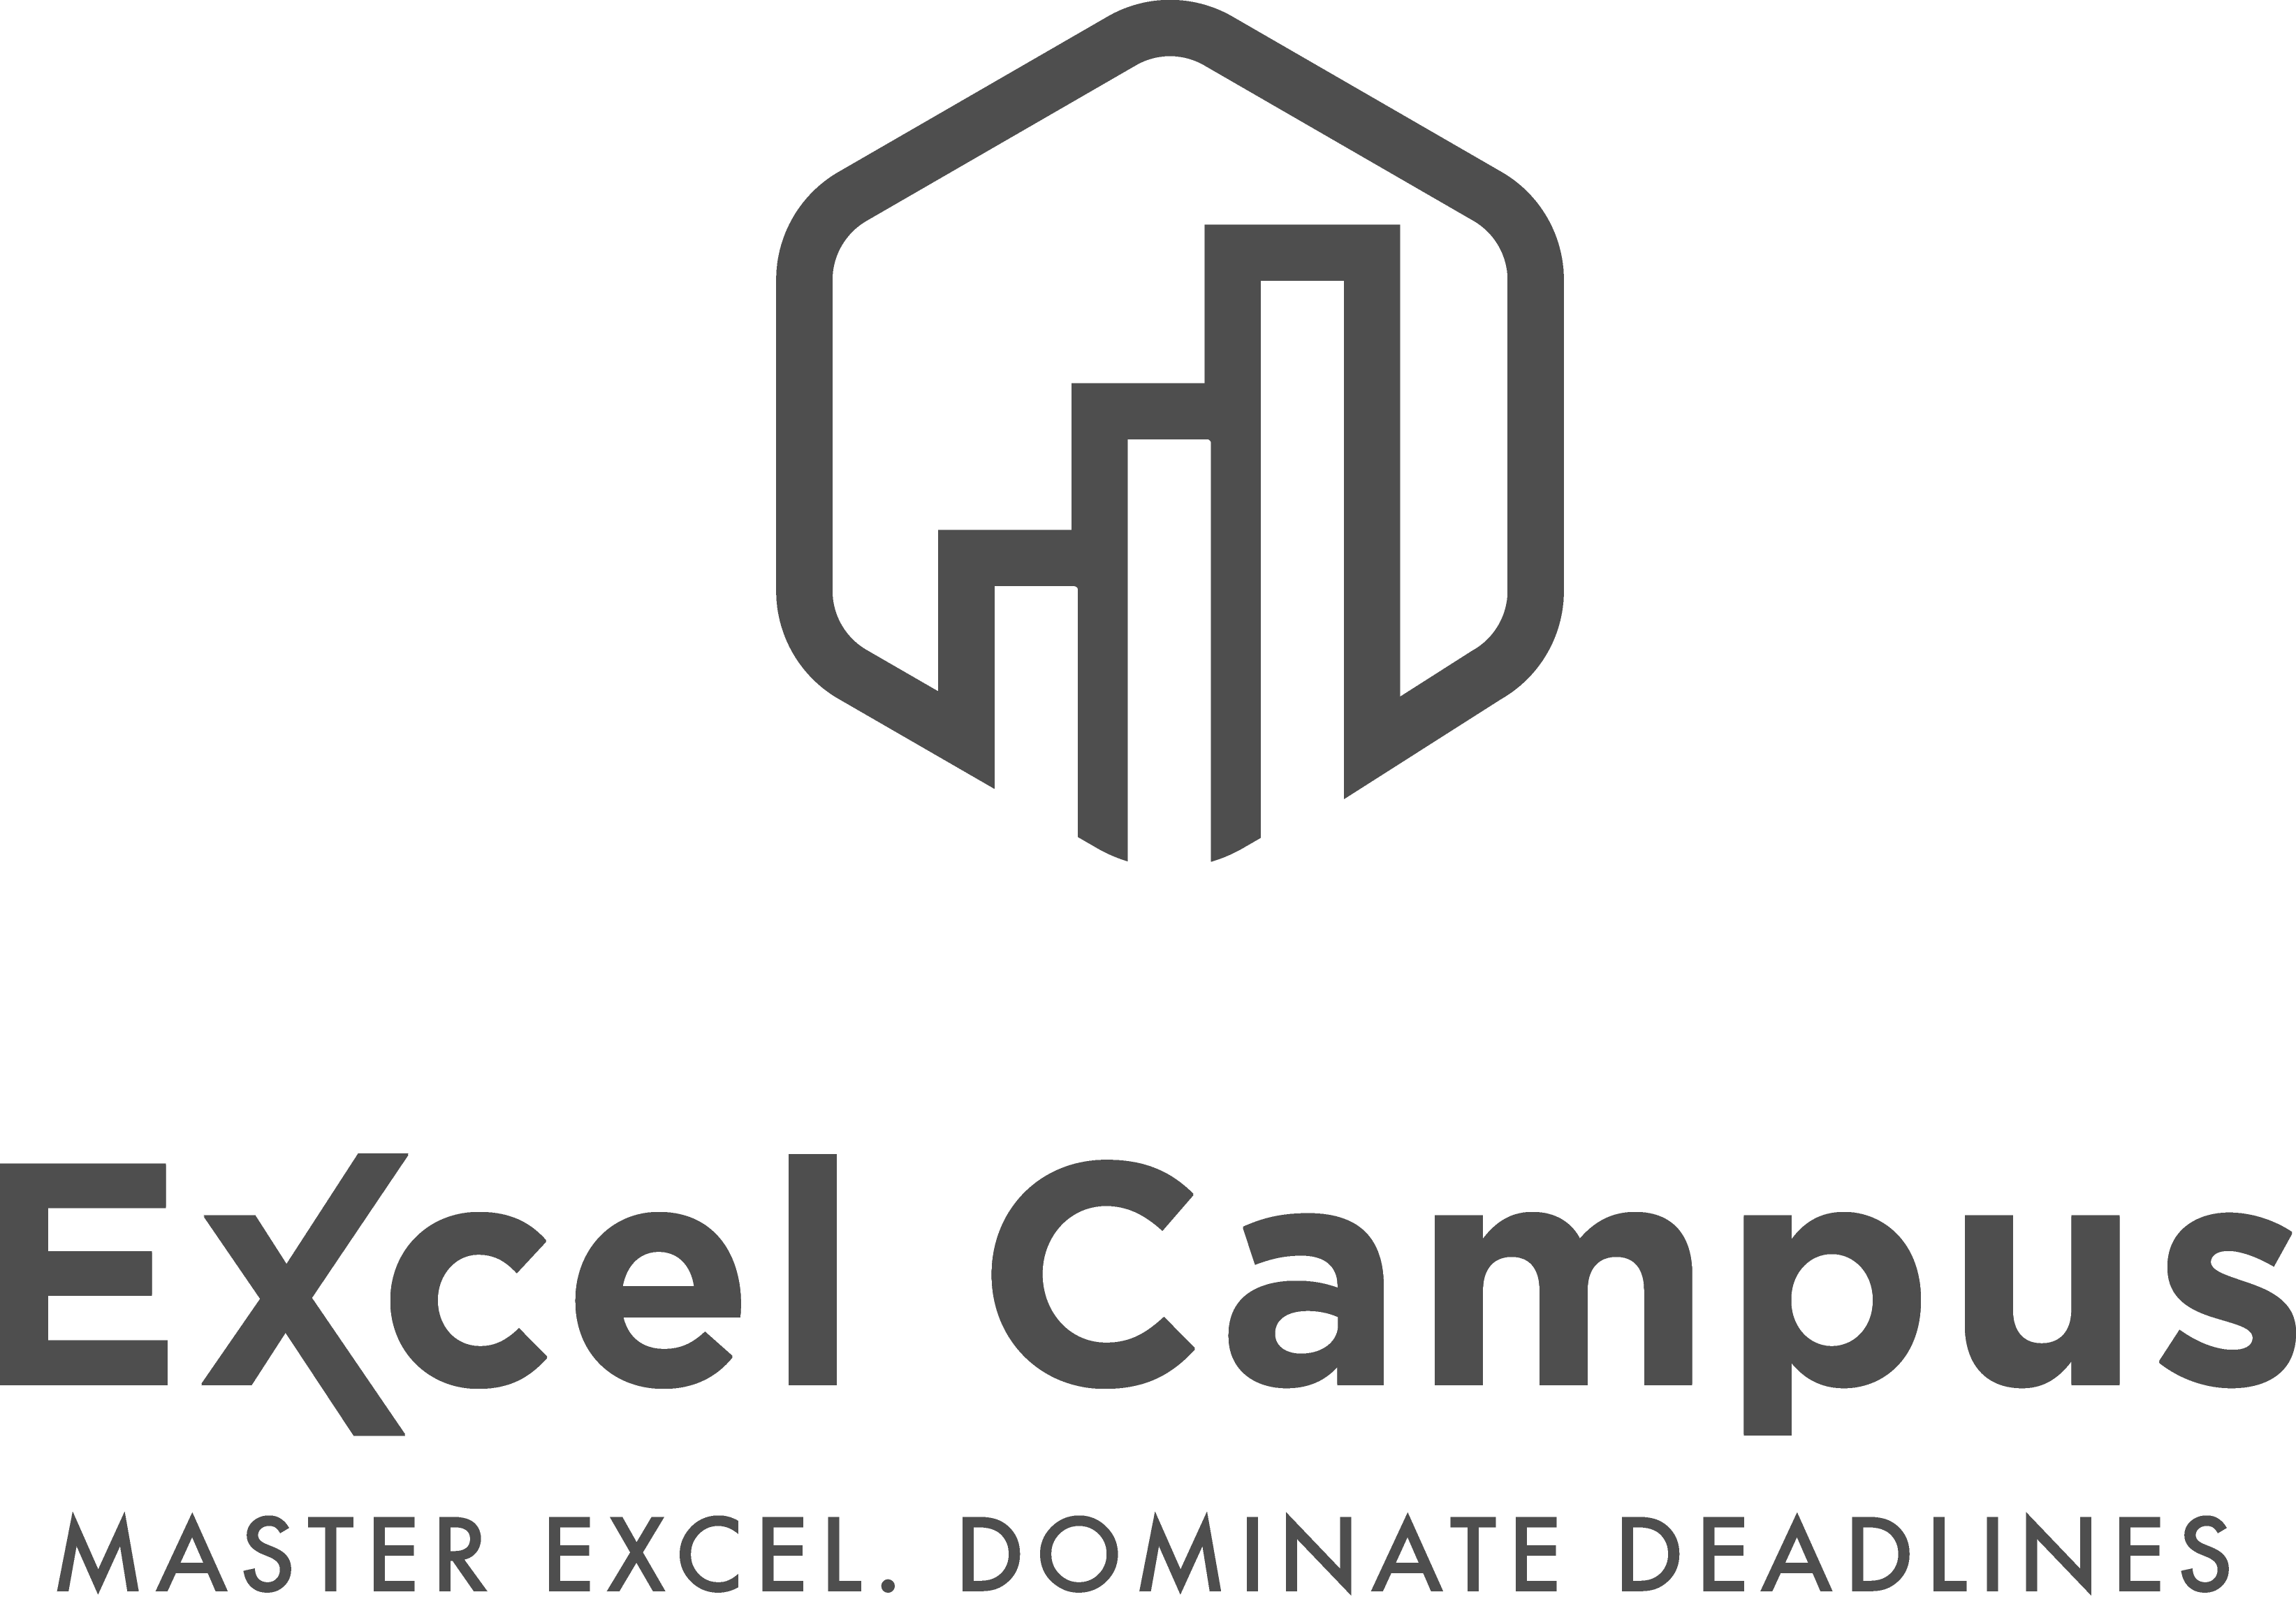 Excel Formula To Calculate Commissions With Tiered Rate Structure